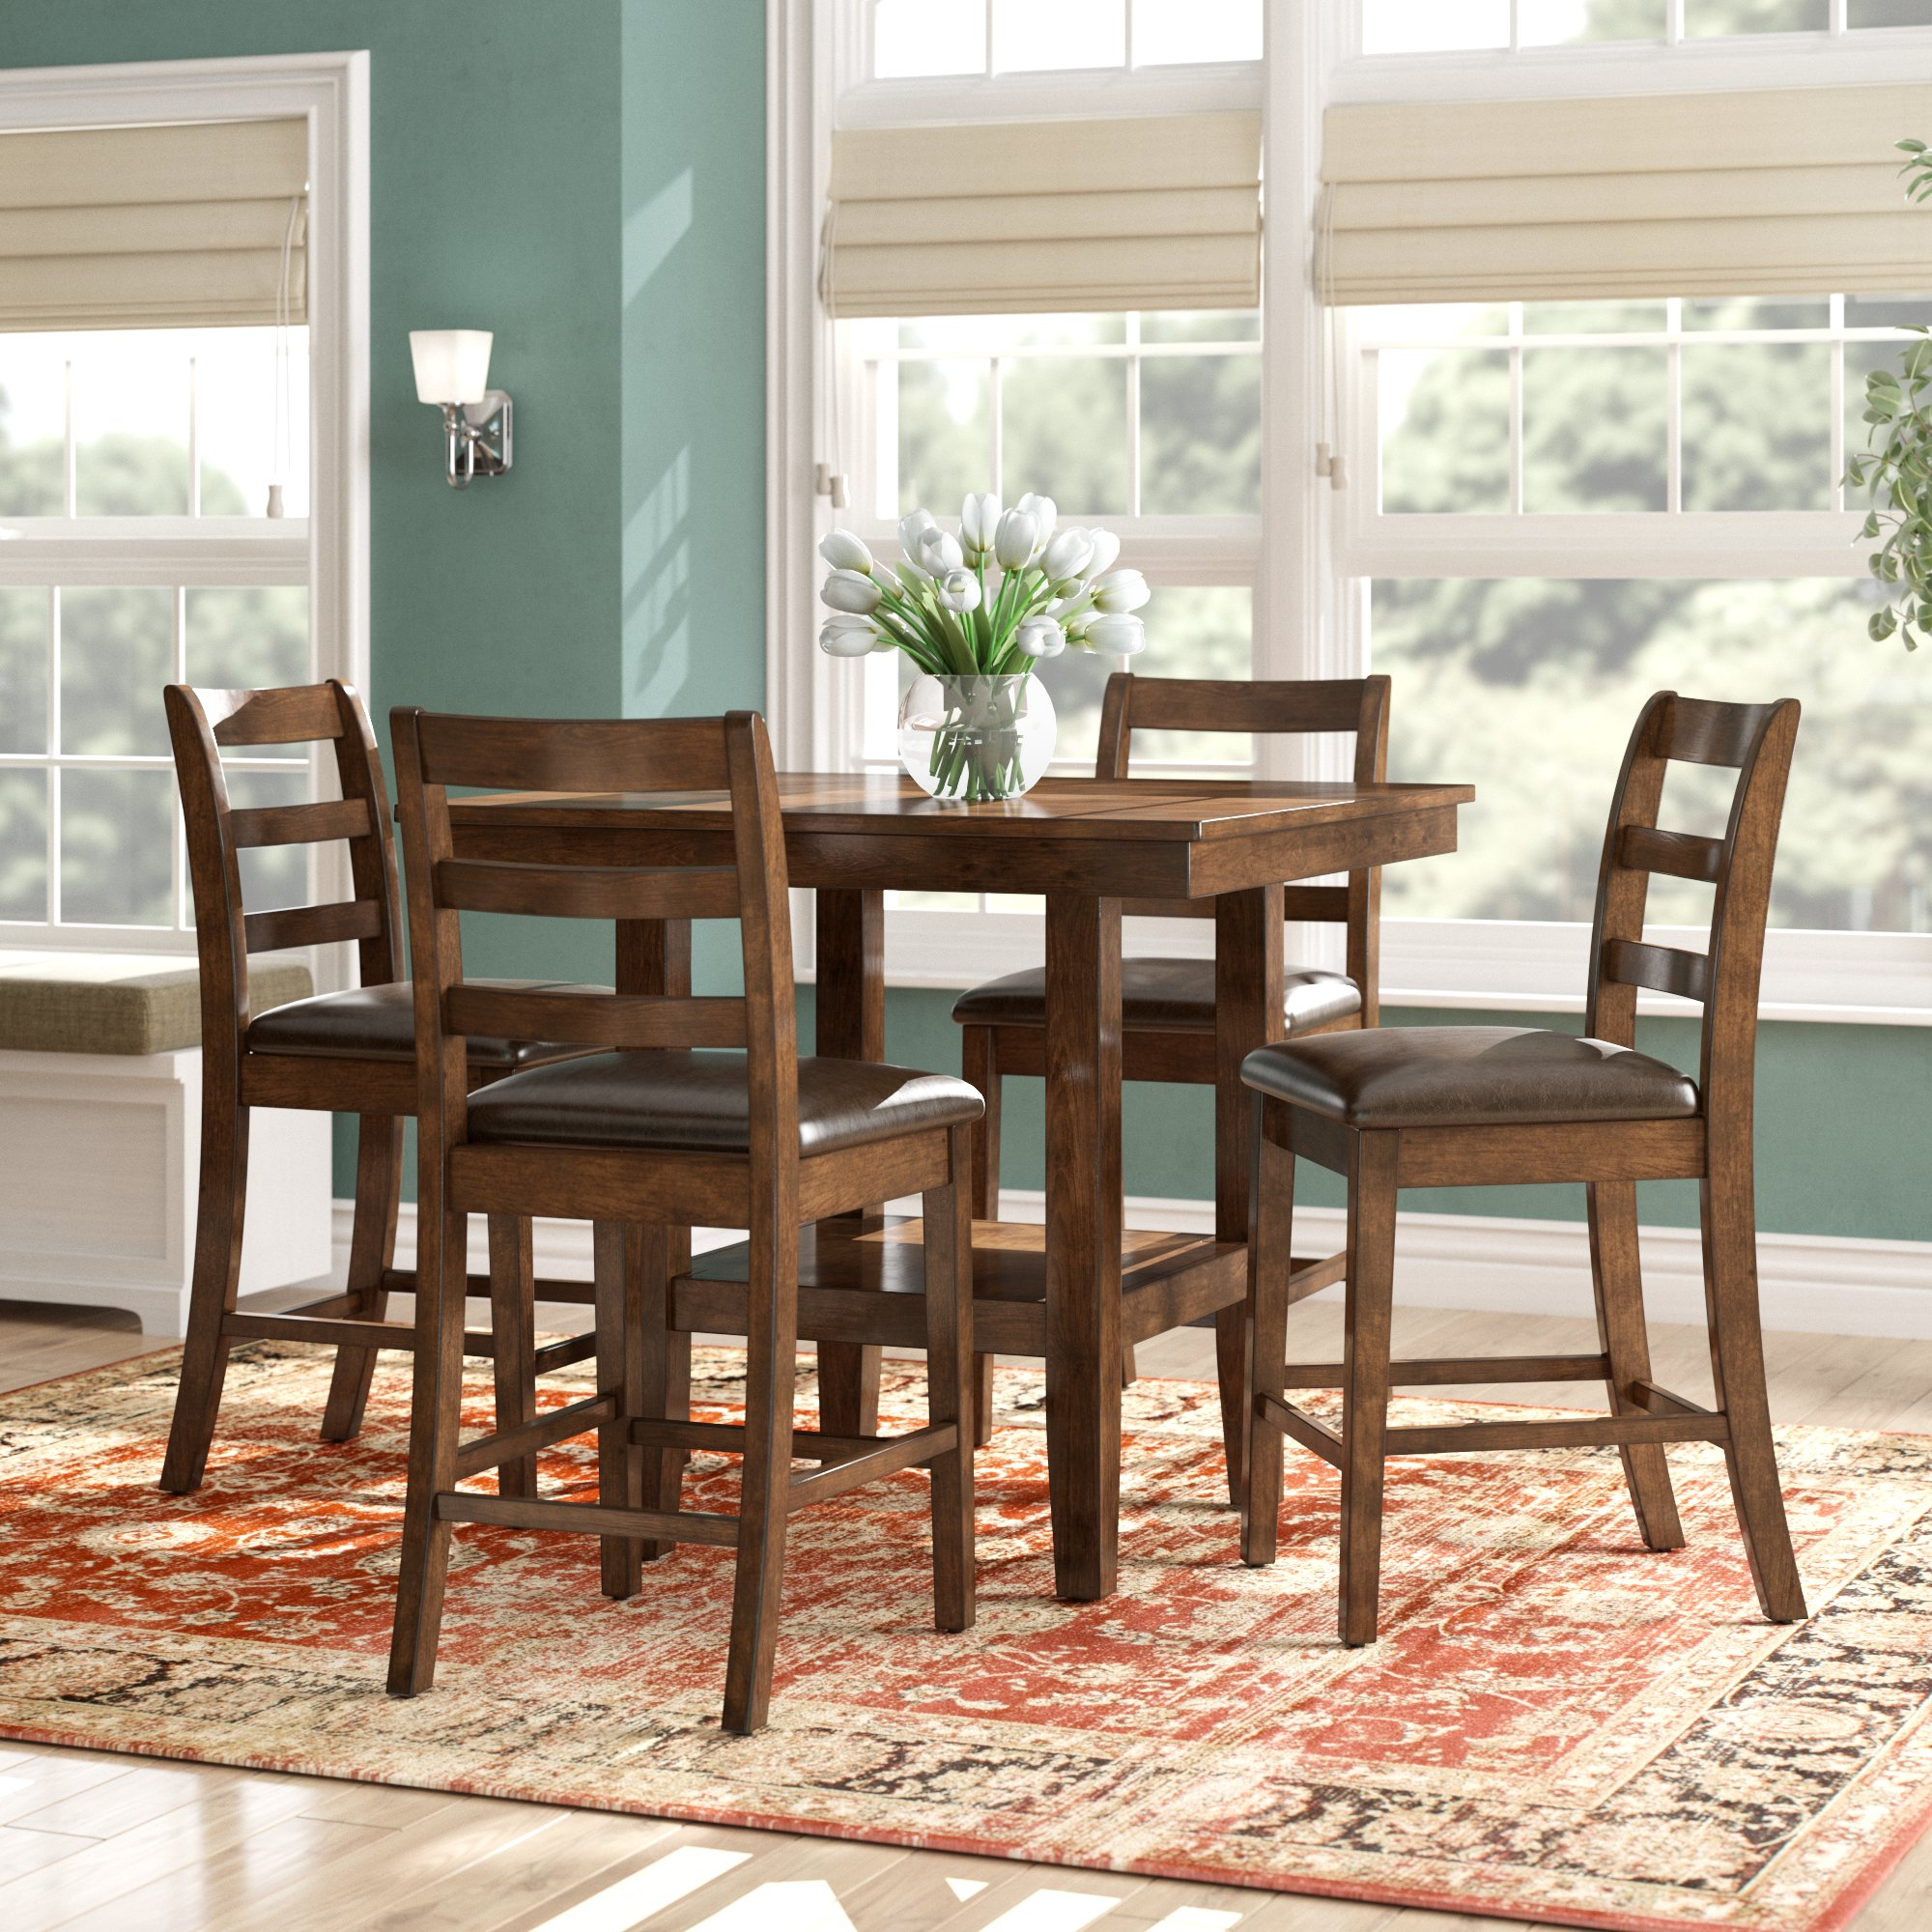 Alcott Hill Gosselin Contemporary 5 Piece Counter Height Dining Set Regarding Most Popular West Hill Family Table 3 Piece Dining Sets (View 7 of 25)